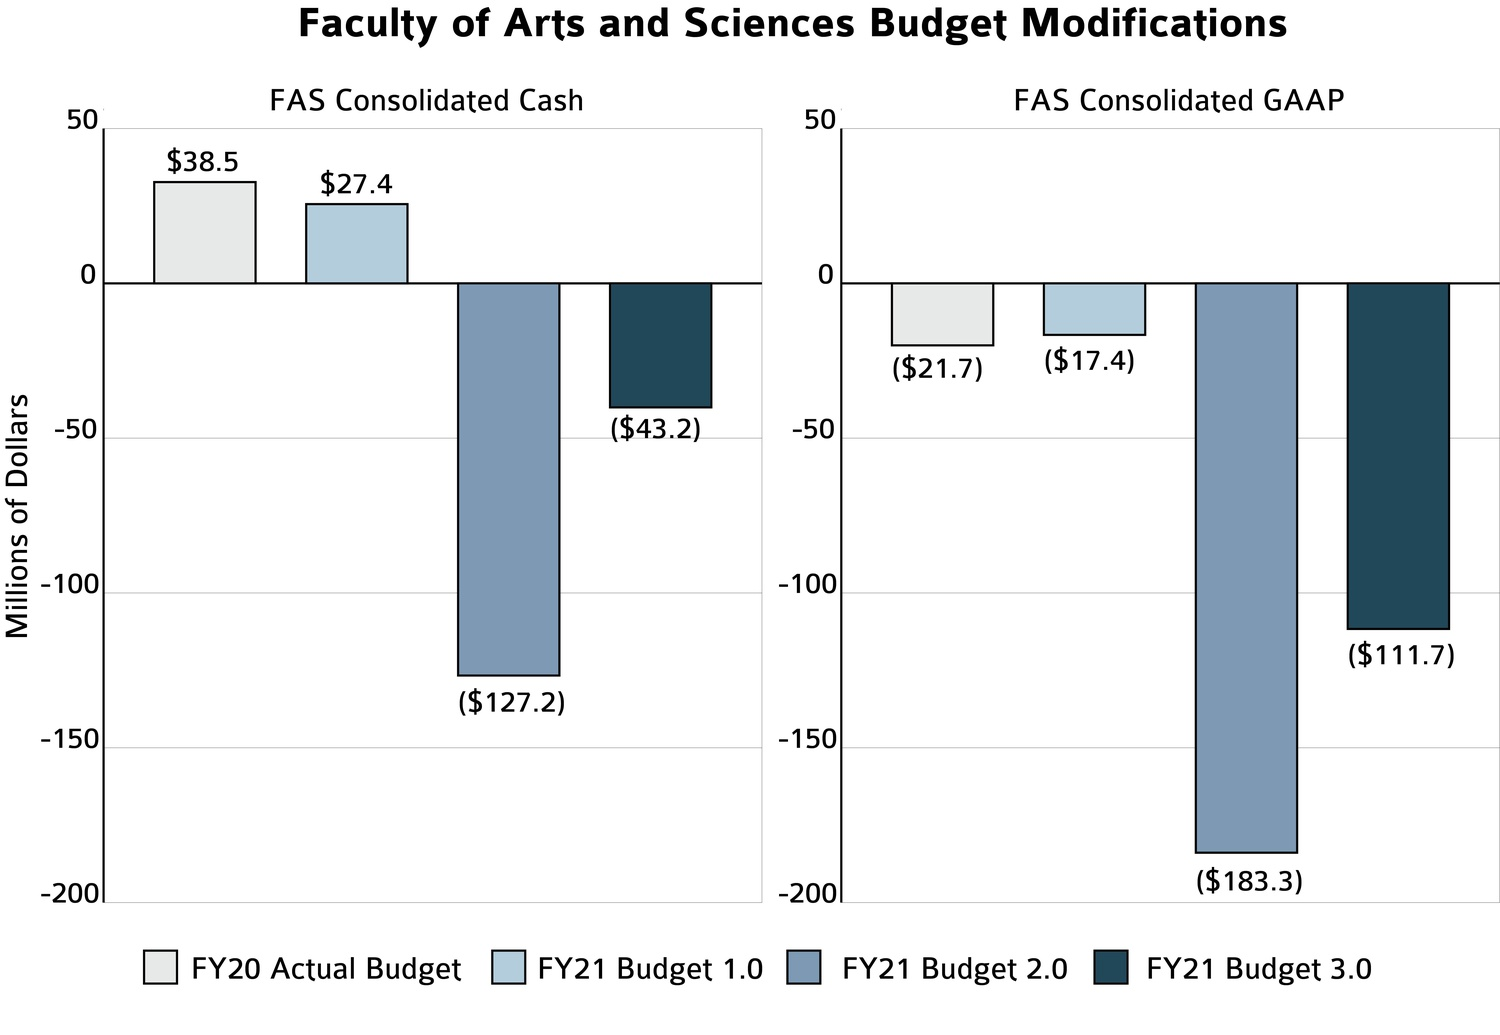 The Faculty of Arts and Sciences's finances have changed during the COVID-19 pandemic.